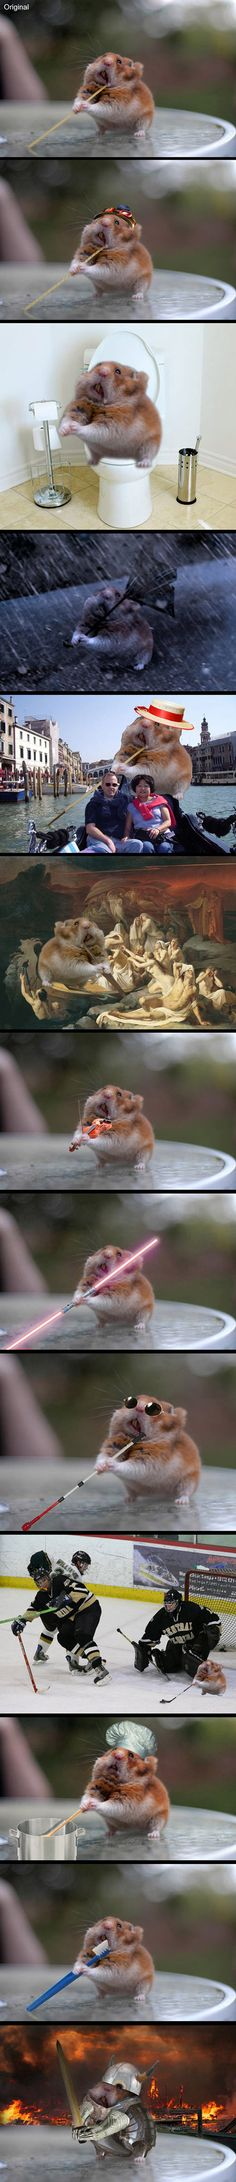 A day in the life of Spaghetti Hamster, according to the internet.